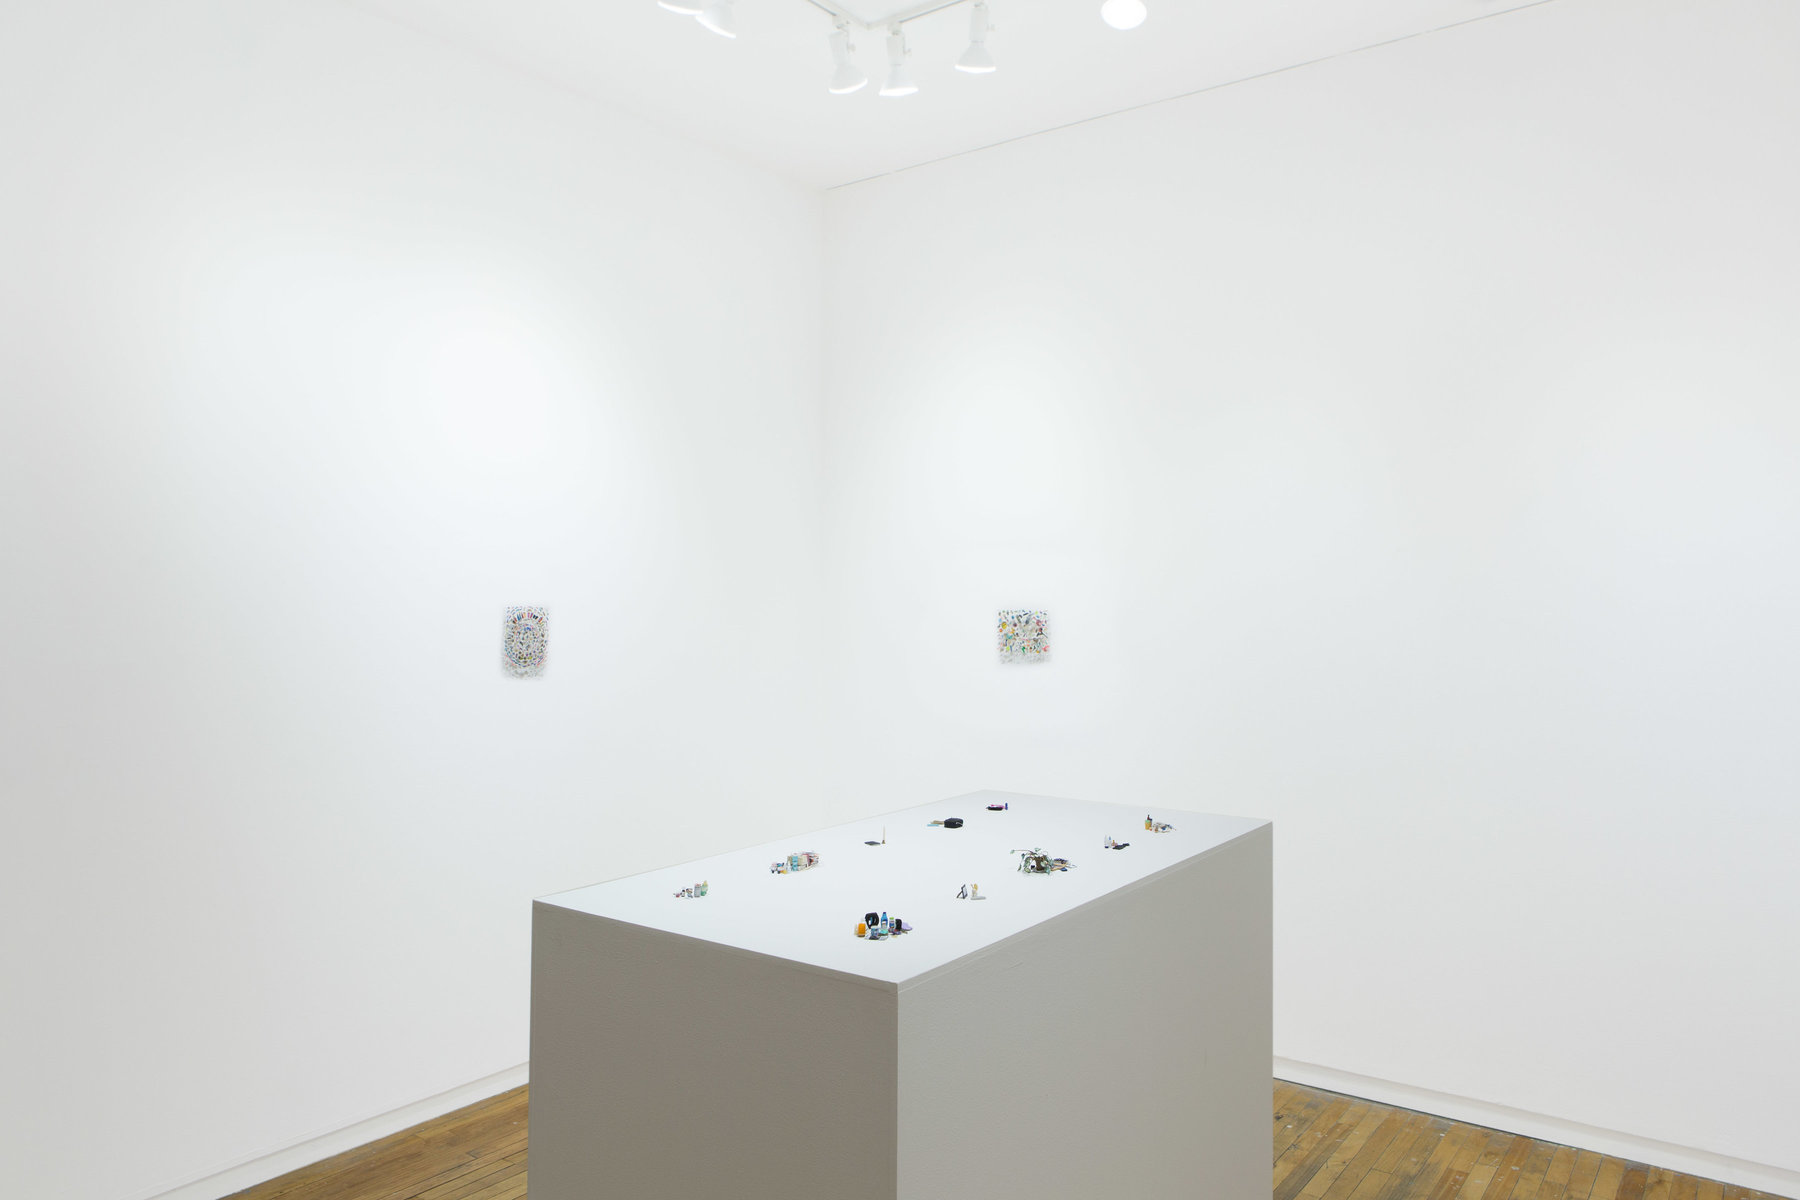 bedside tables Installation view Andrew Rafacz Gallery